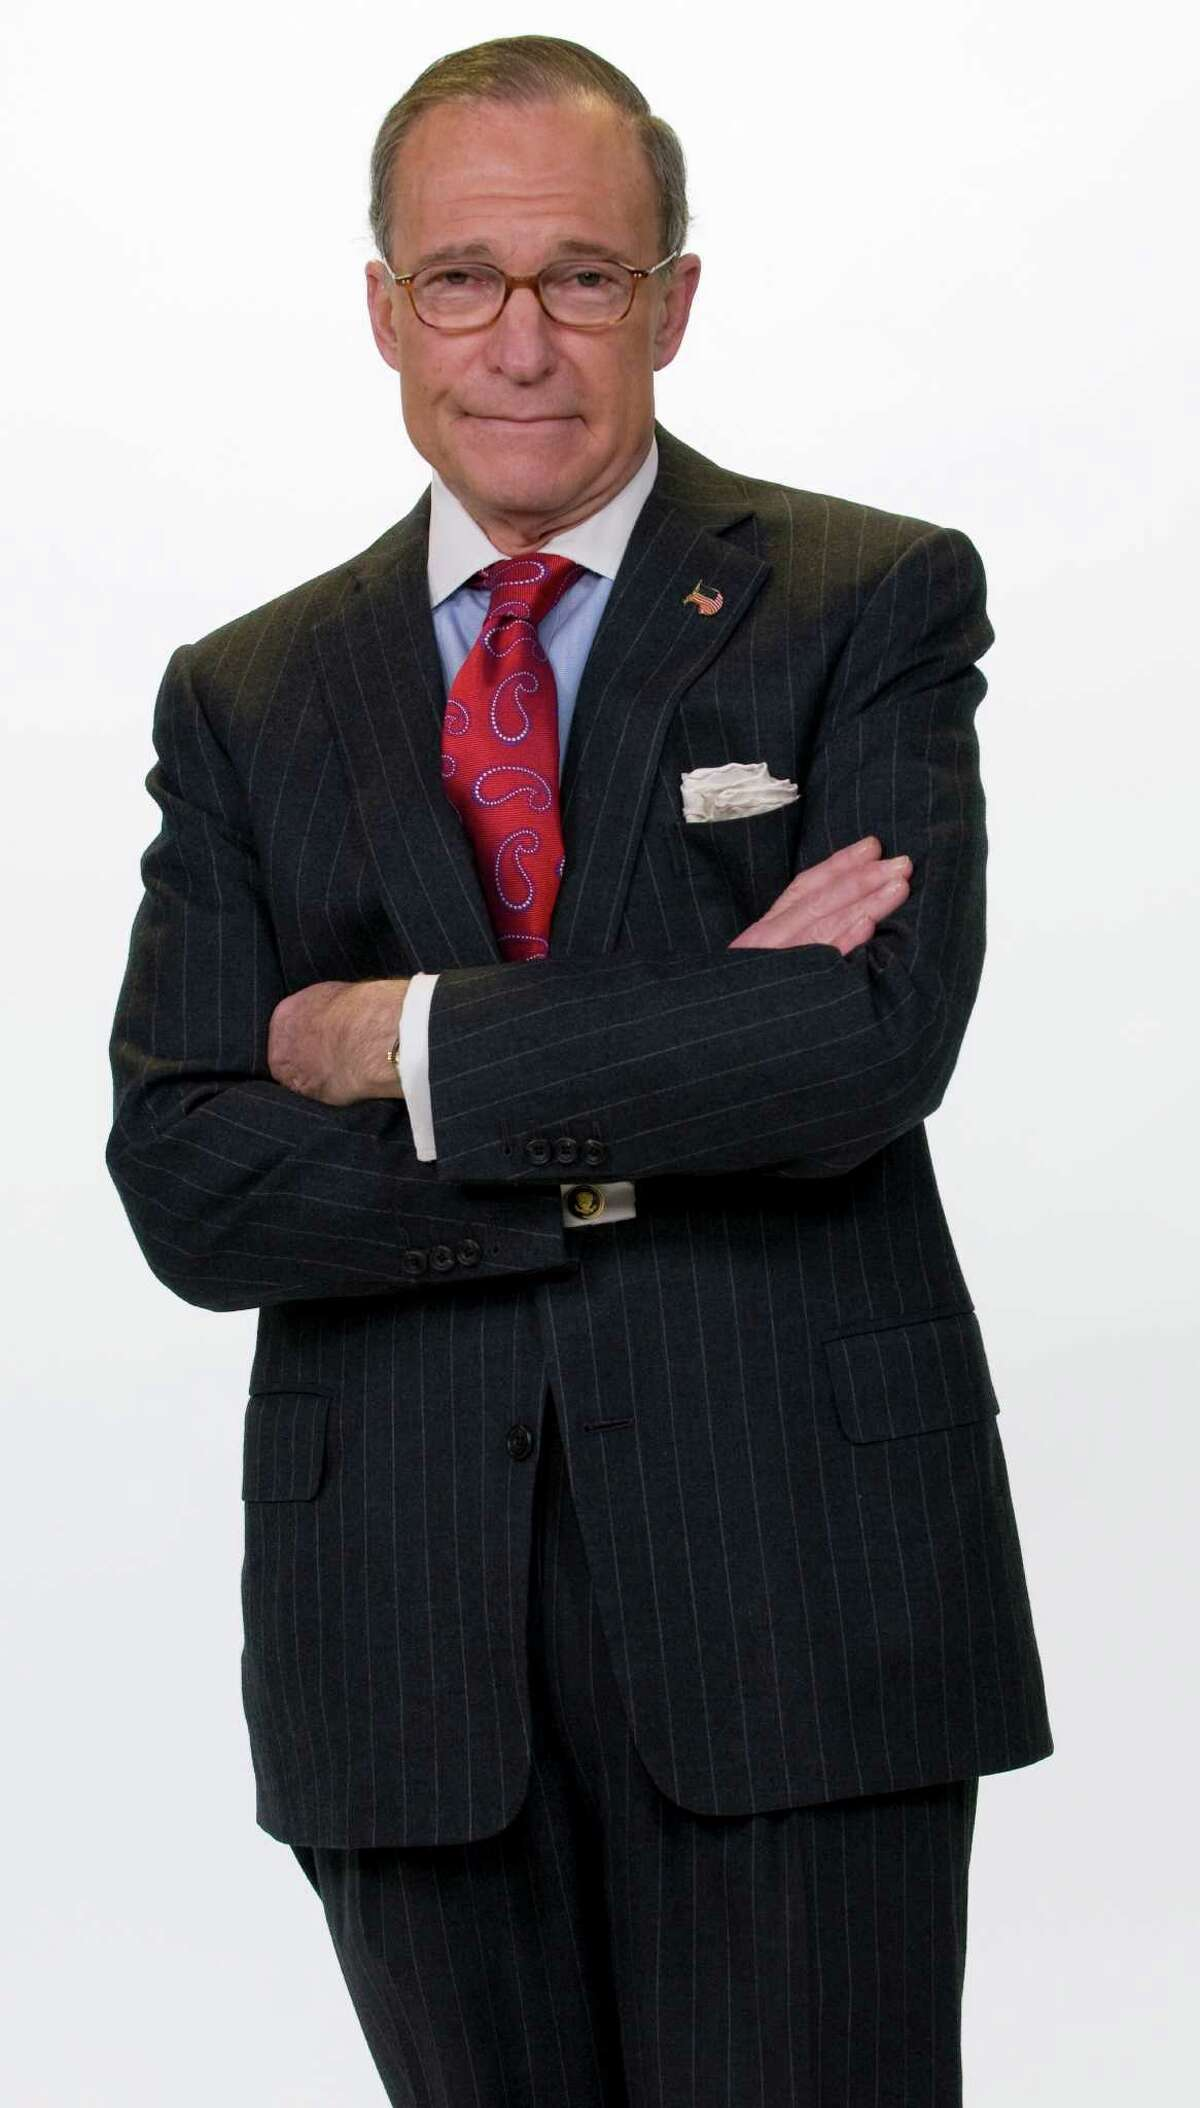 CNBC anchorman and nationally syndicated columnist Larry Kudlow, a Redding resident, says he's moving closer to challenging Democratic Sen. Richard Blumenthal in 2016 based on Blumenthal's support for the Iran nuclear deal.